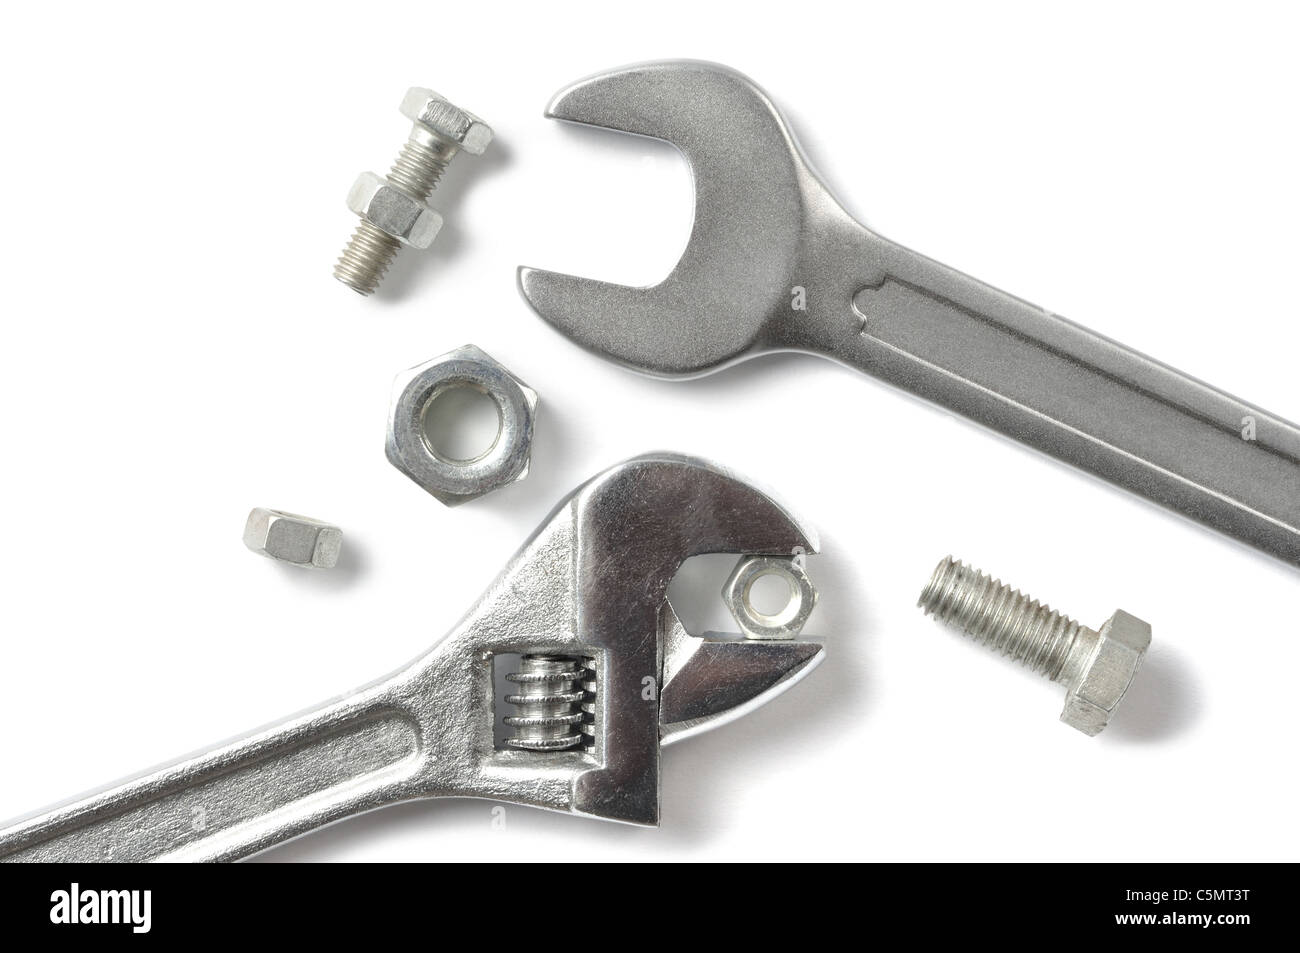 Set of wrenches and screws isolated on white background - Stock Image